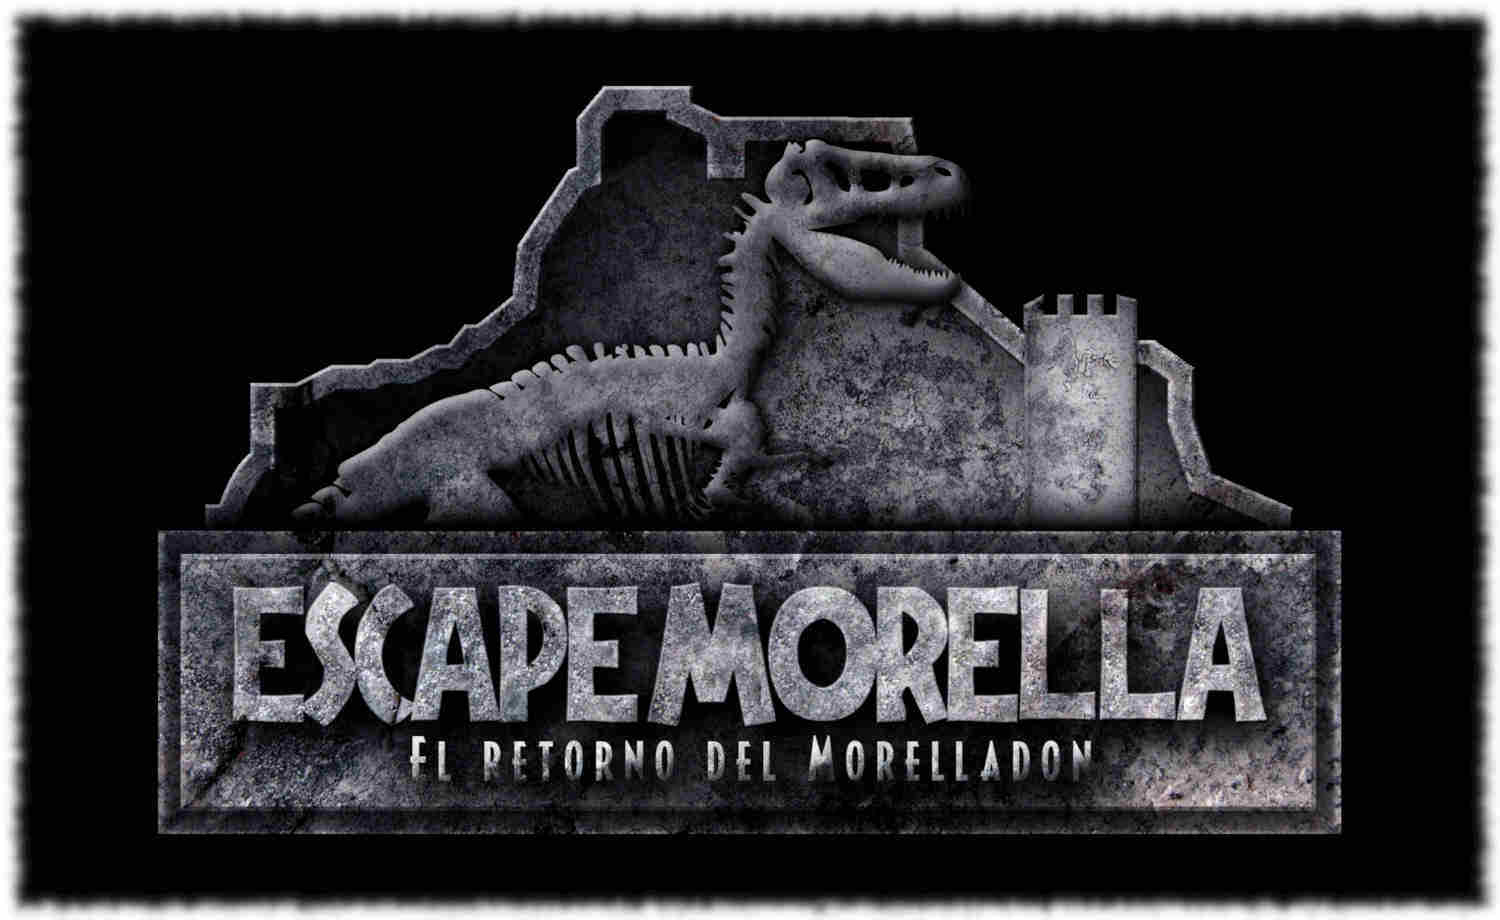 Escape Morelladon